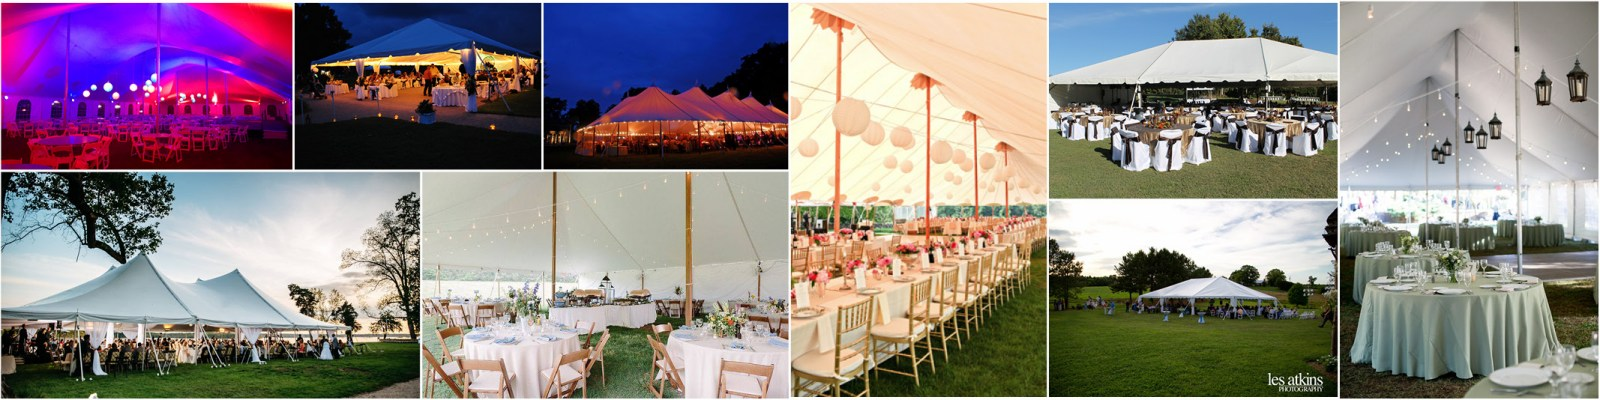 Tent services in Richmond VA, Colonial Heights, South Hill, Chester, and Petersburg Virginia